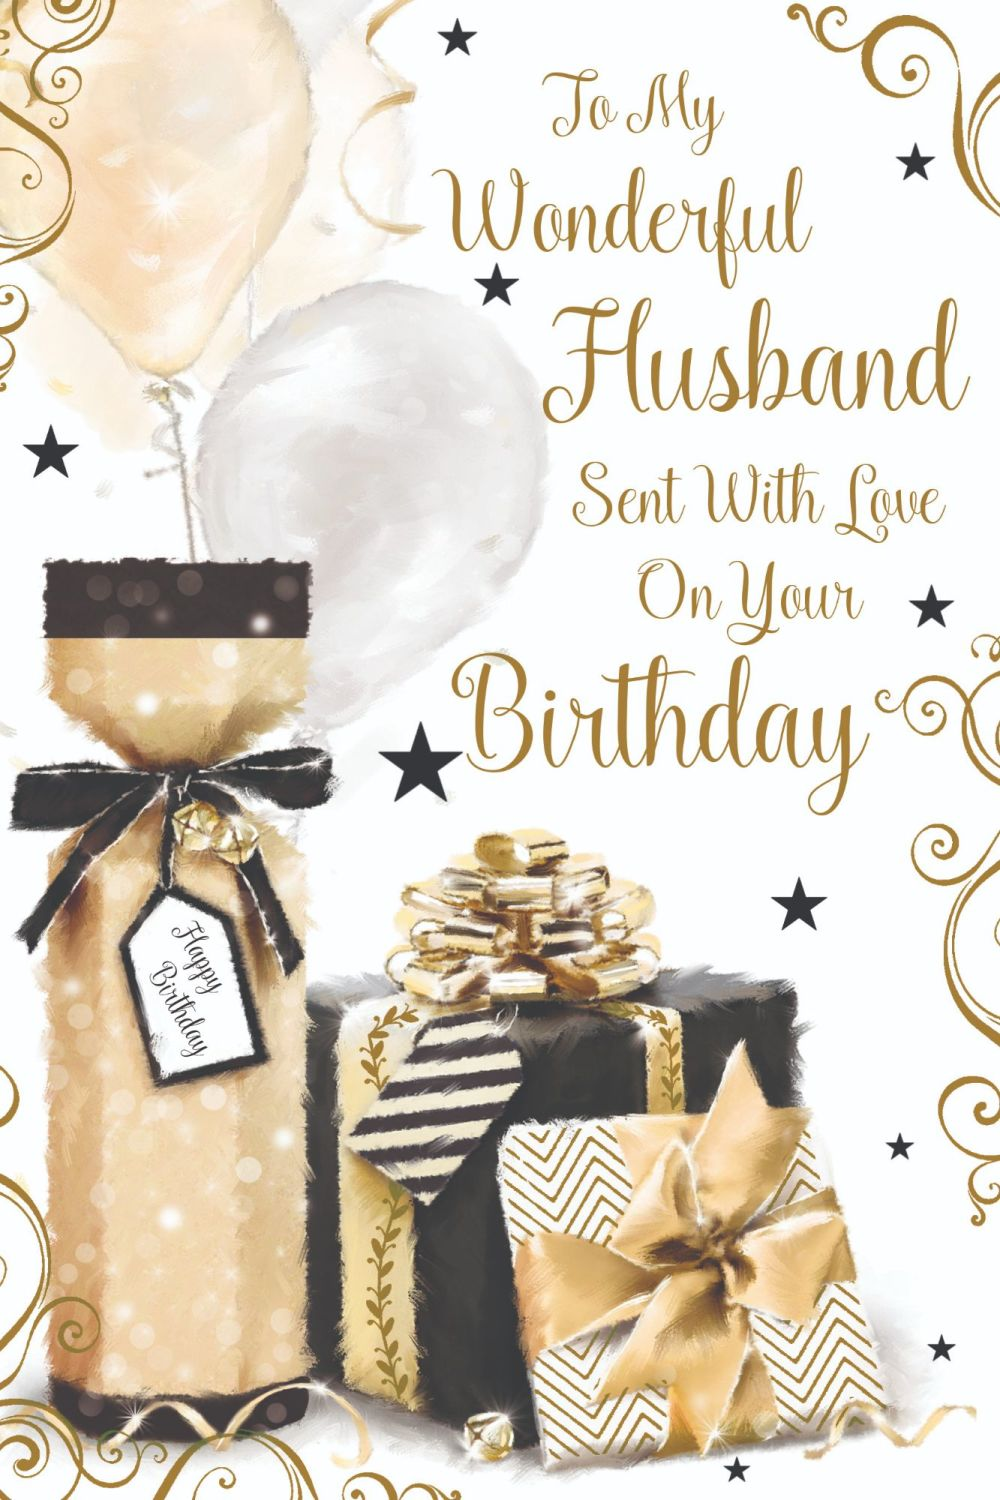 Wonderful Husband Birthday Card - With LOVE On Your BIRTHDAY - Husband BIRT